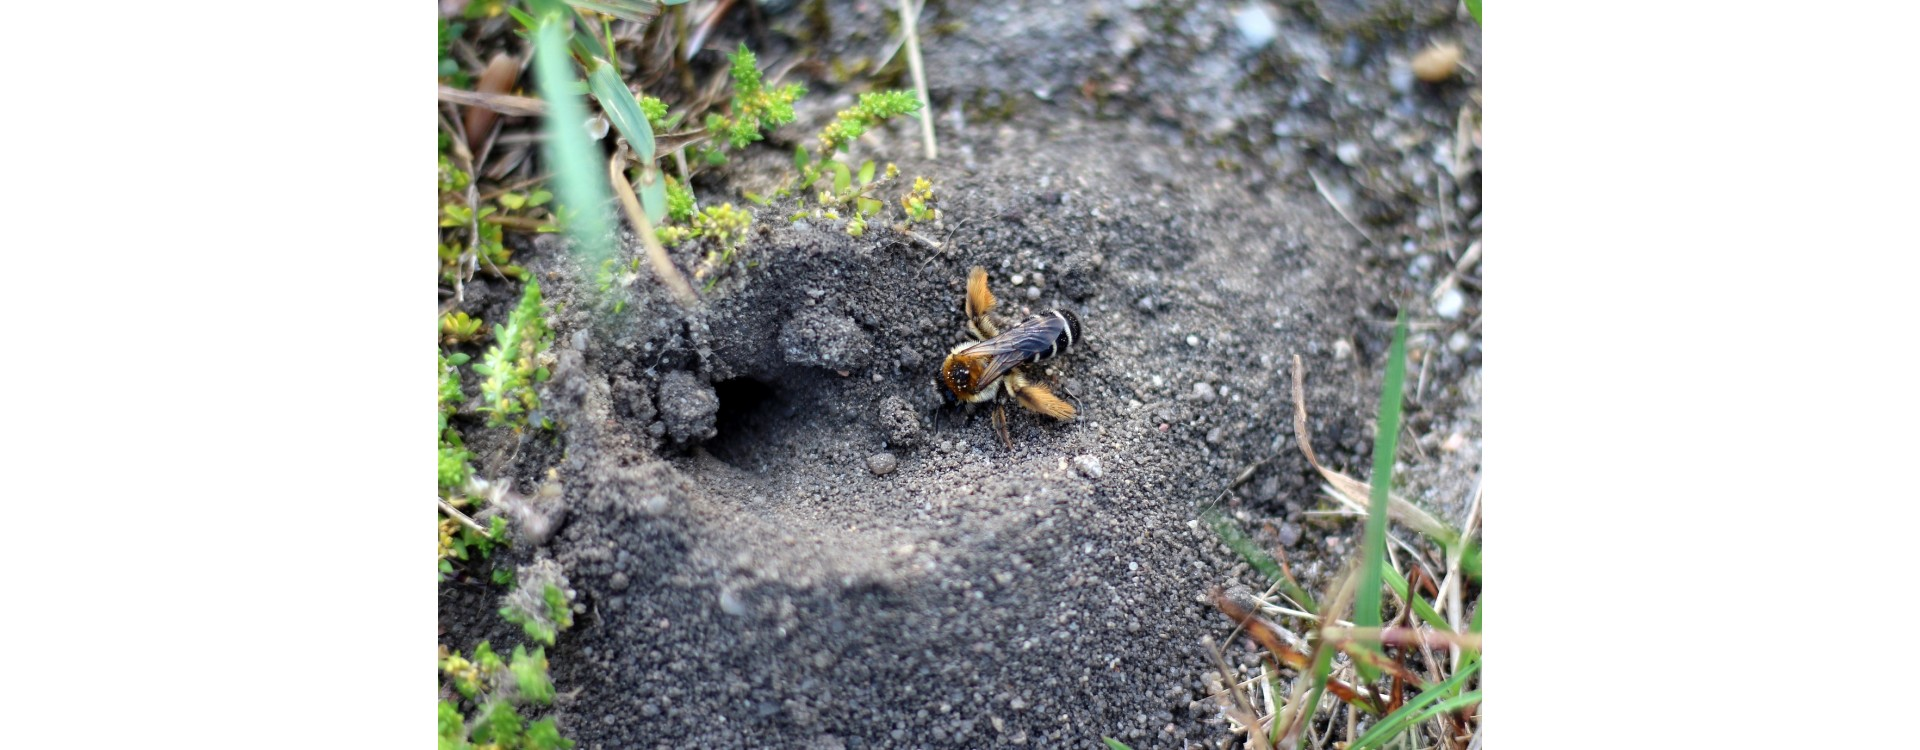 Do The Mining Bees Sting